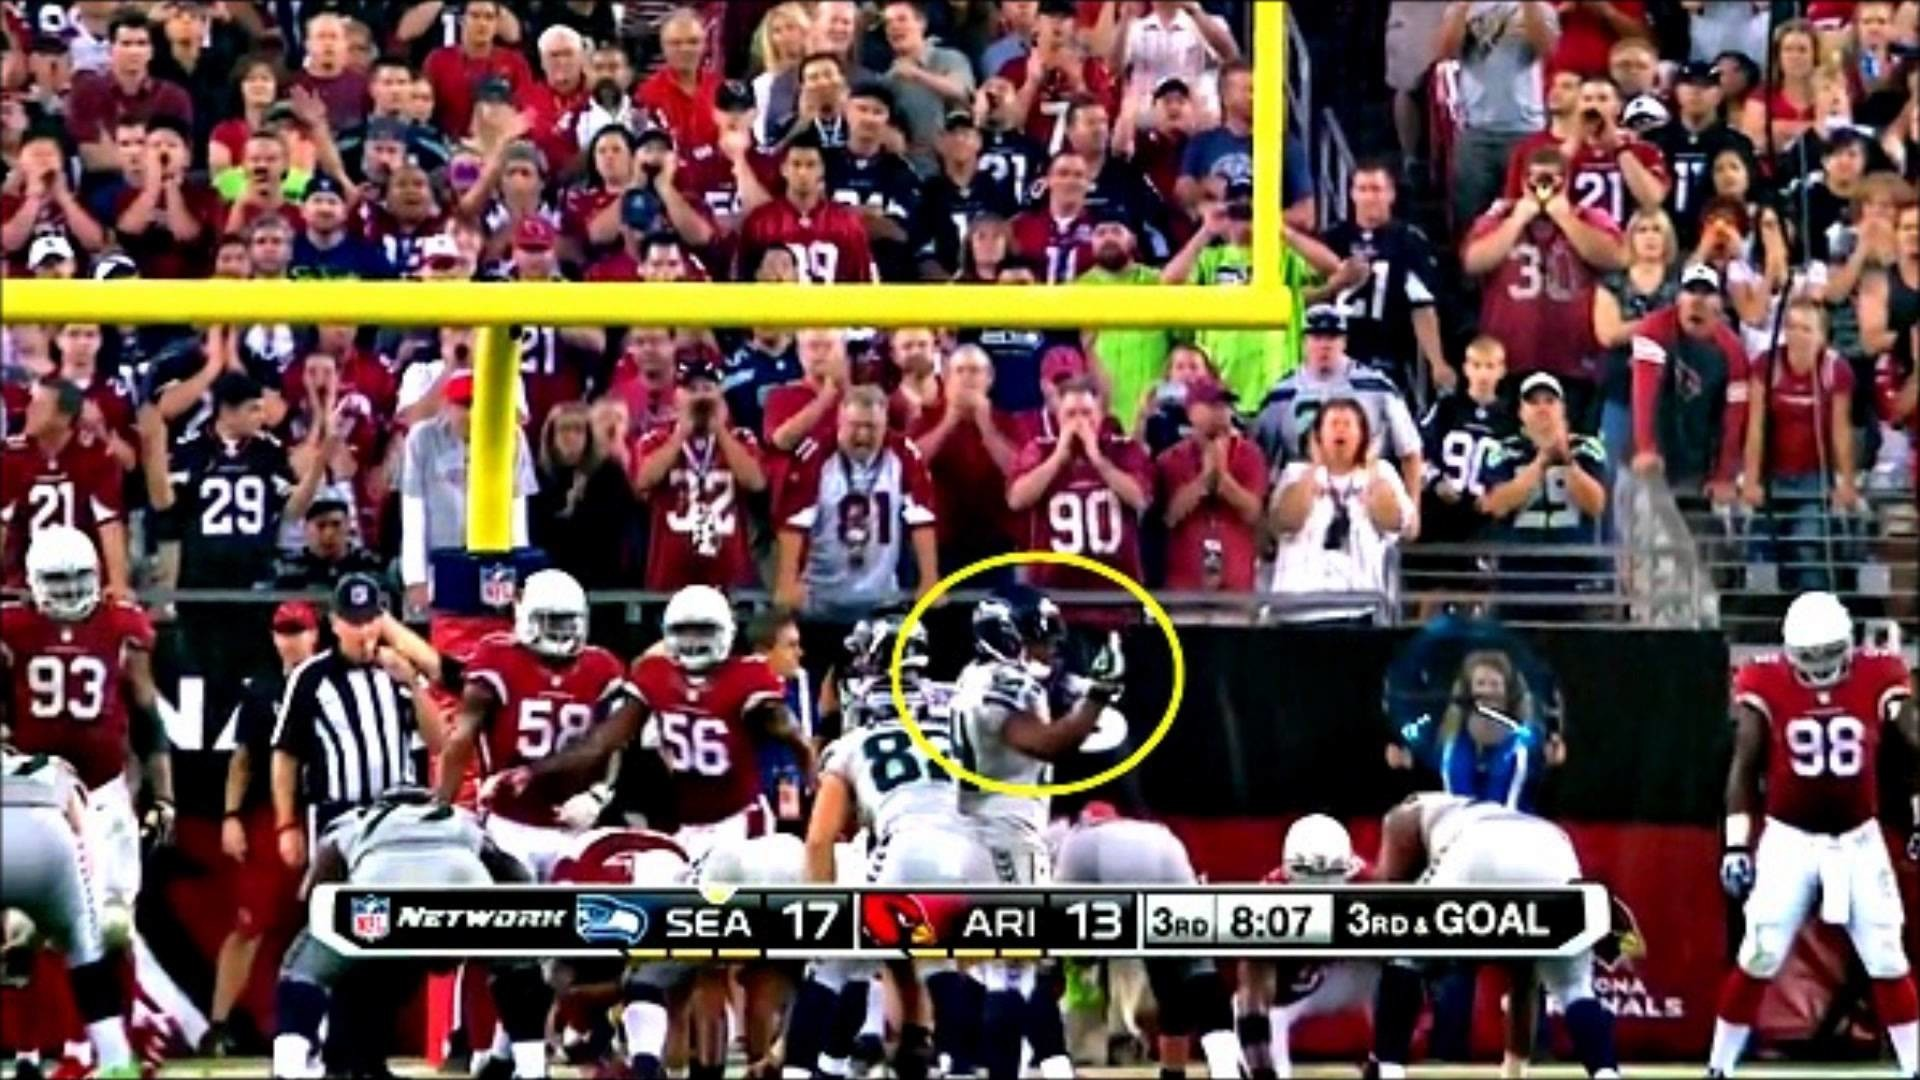 Did Marshawn Lynch get fined when he flipped the bird at Bevell?